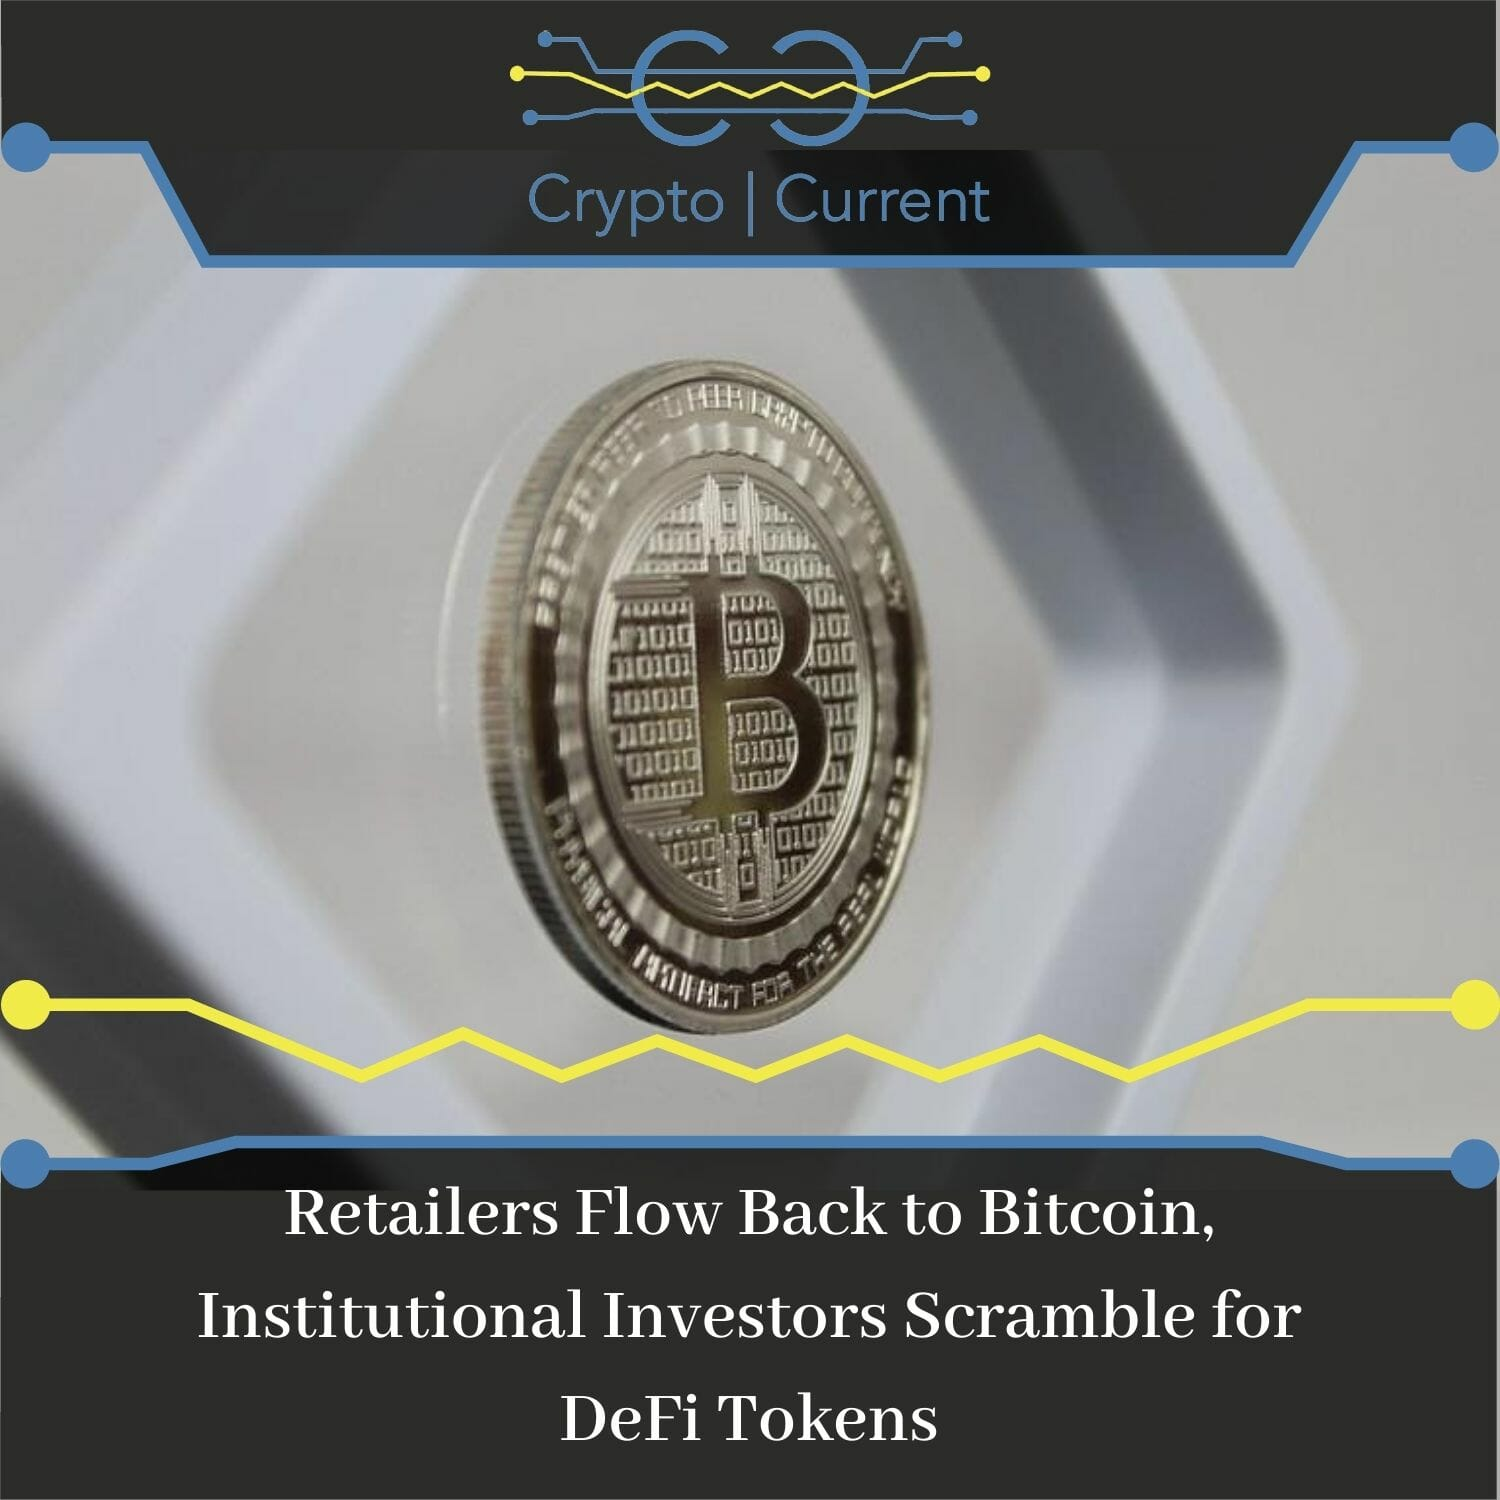 Retailers Flow Back to Bitcoin, Institutional Investors Scramble for DeFi Tokens